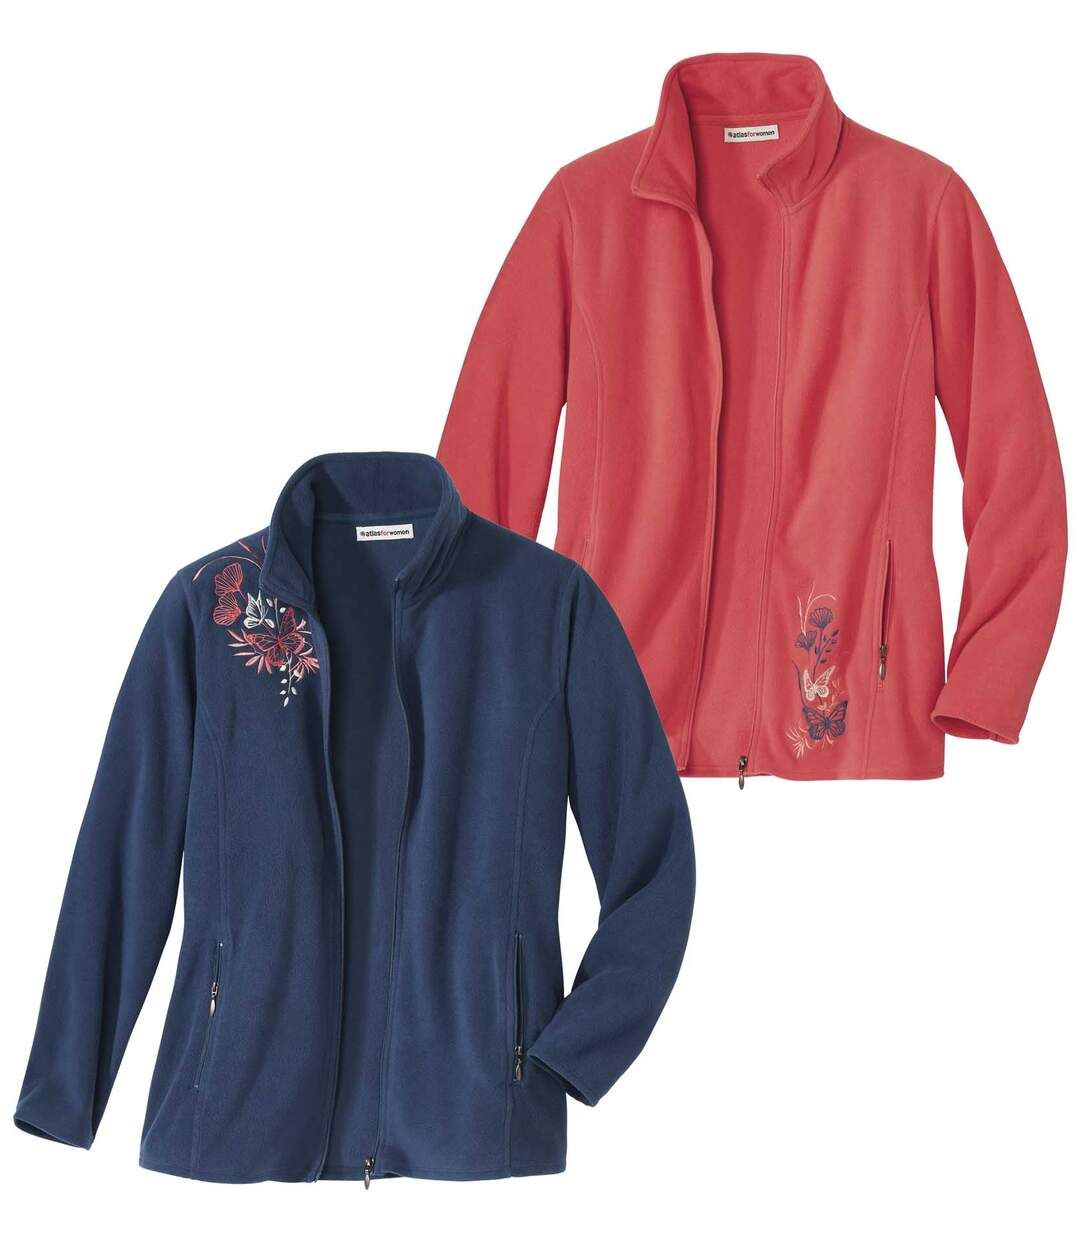 Pack of 2 Women's Embroidered Microfleece Jackets - Blue Pink  Atlas For Men